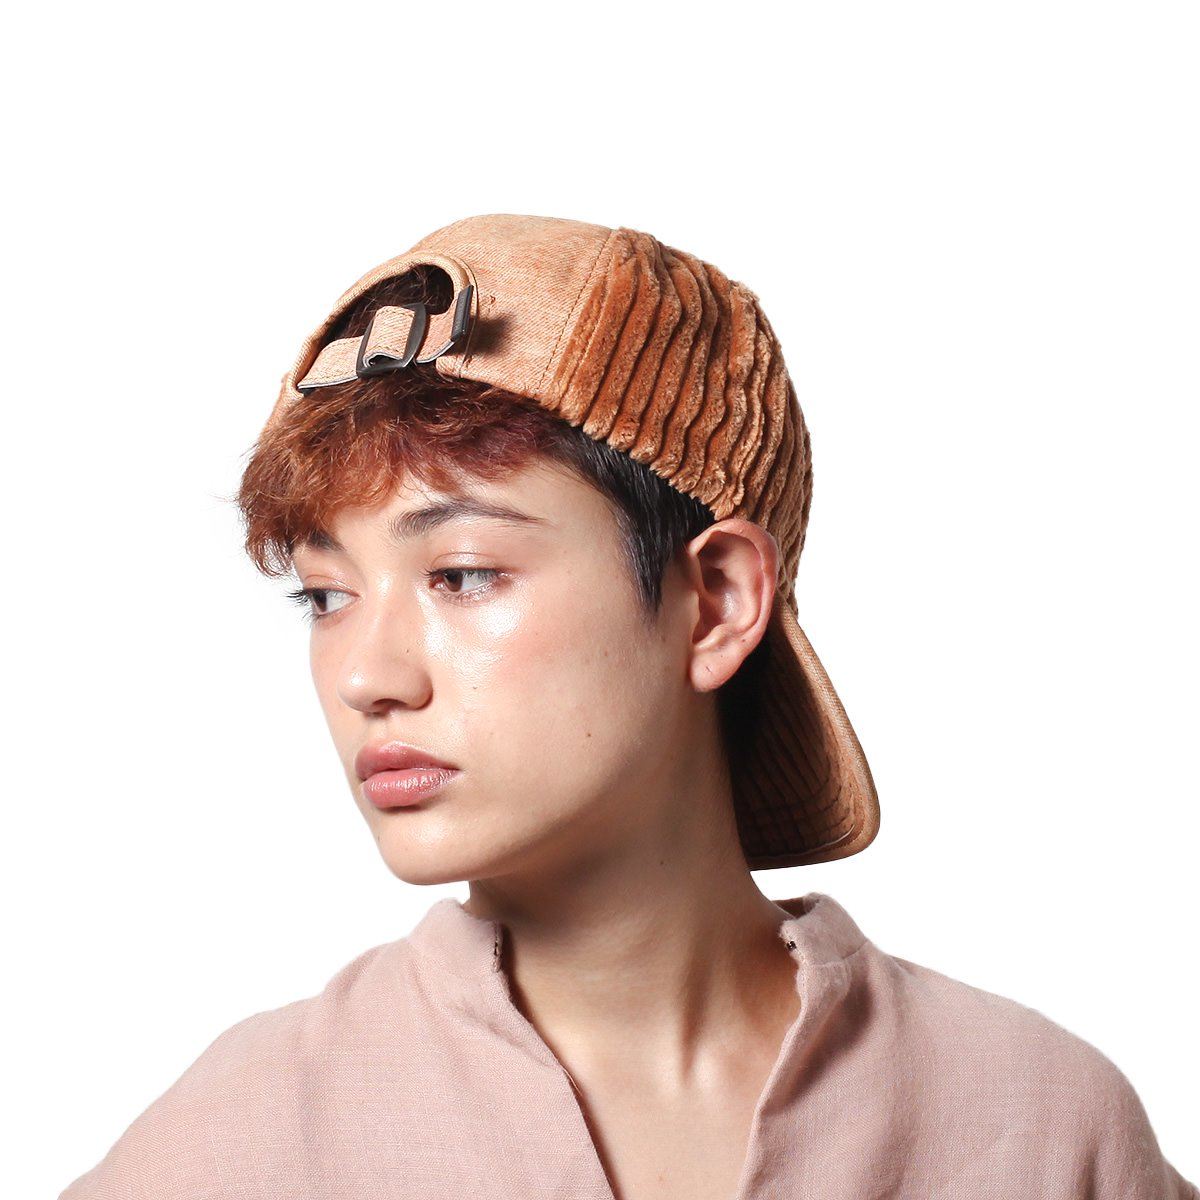 【SALE】LEATHER COMBI CORDUROY 8PANEL CAP 詳細画像11